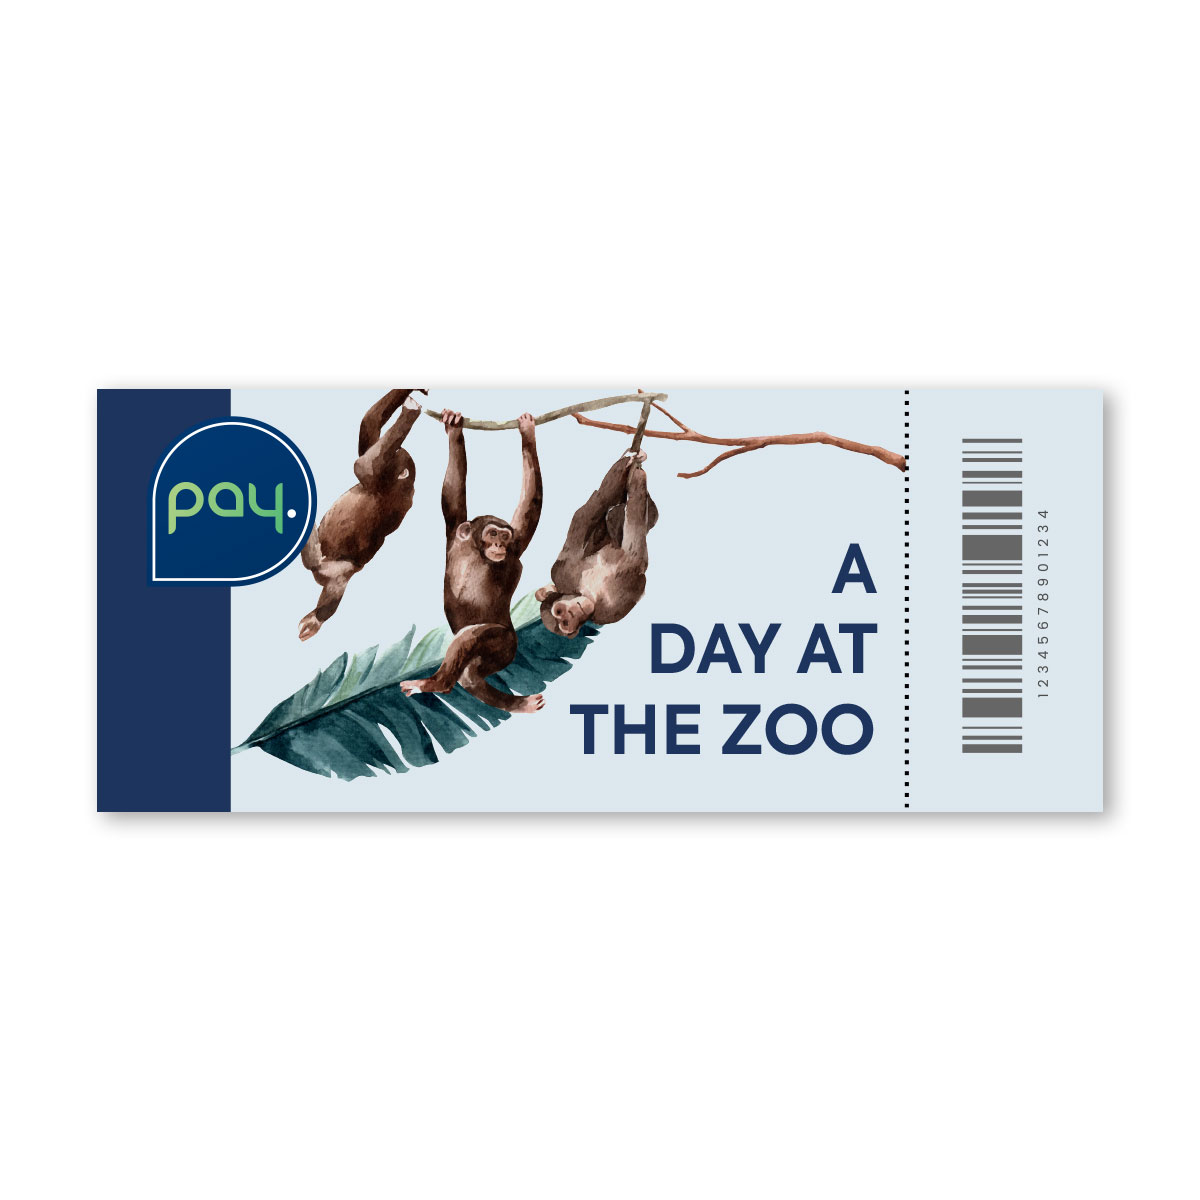 PAY. Ticket for the Zoo